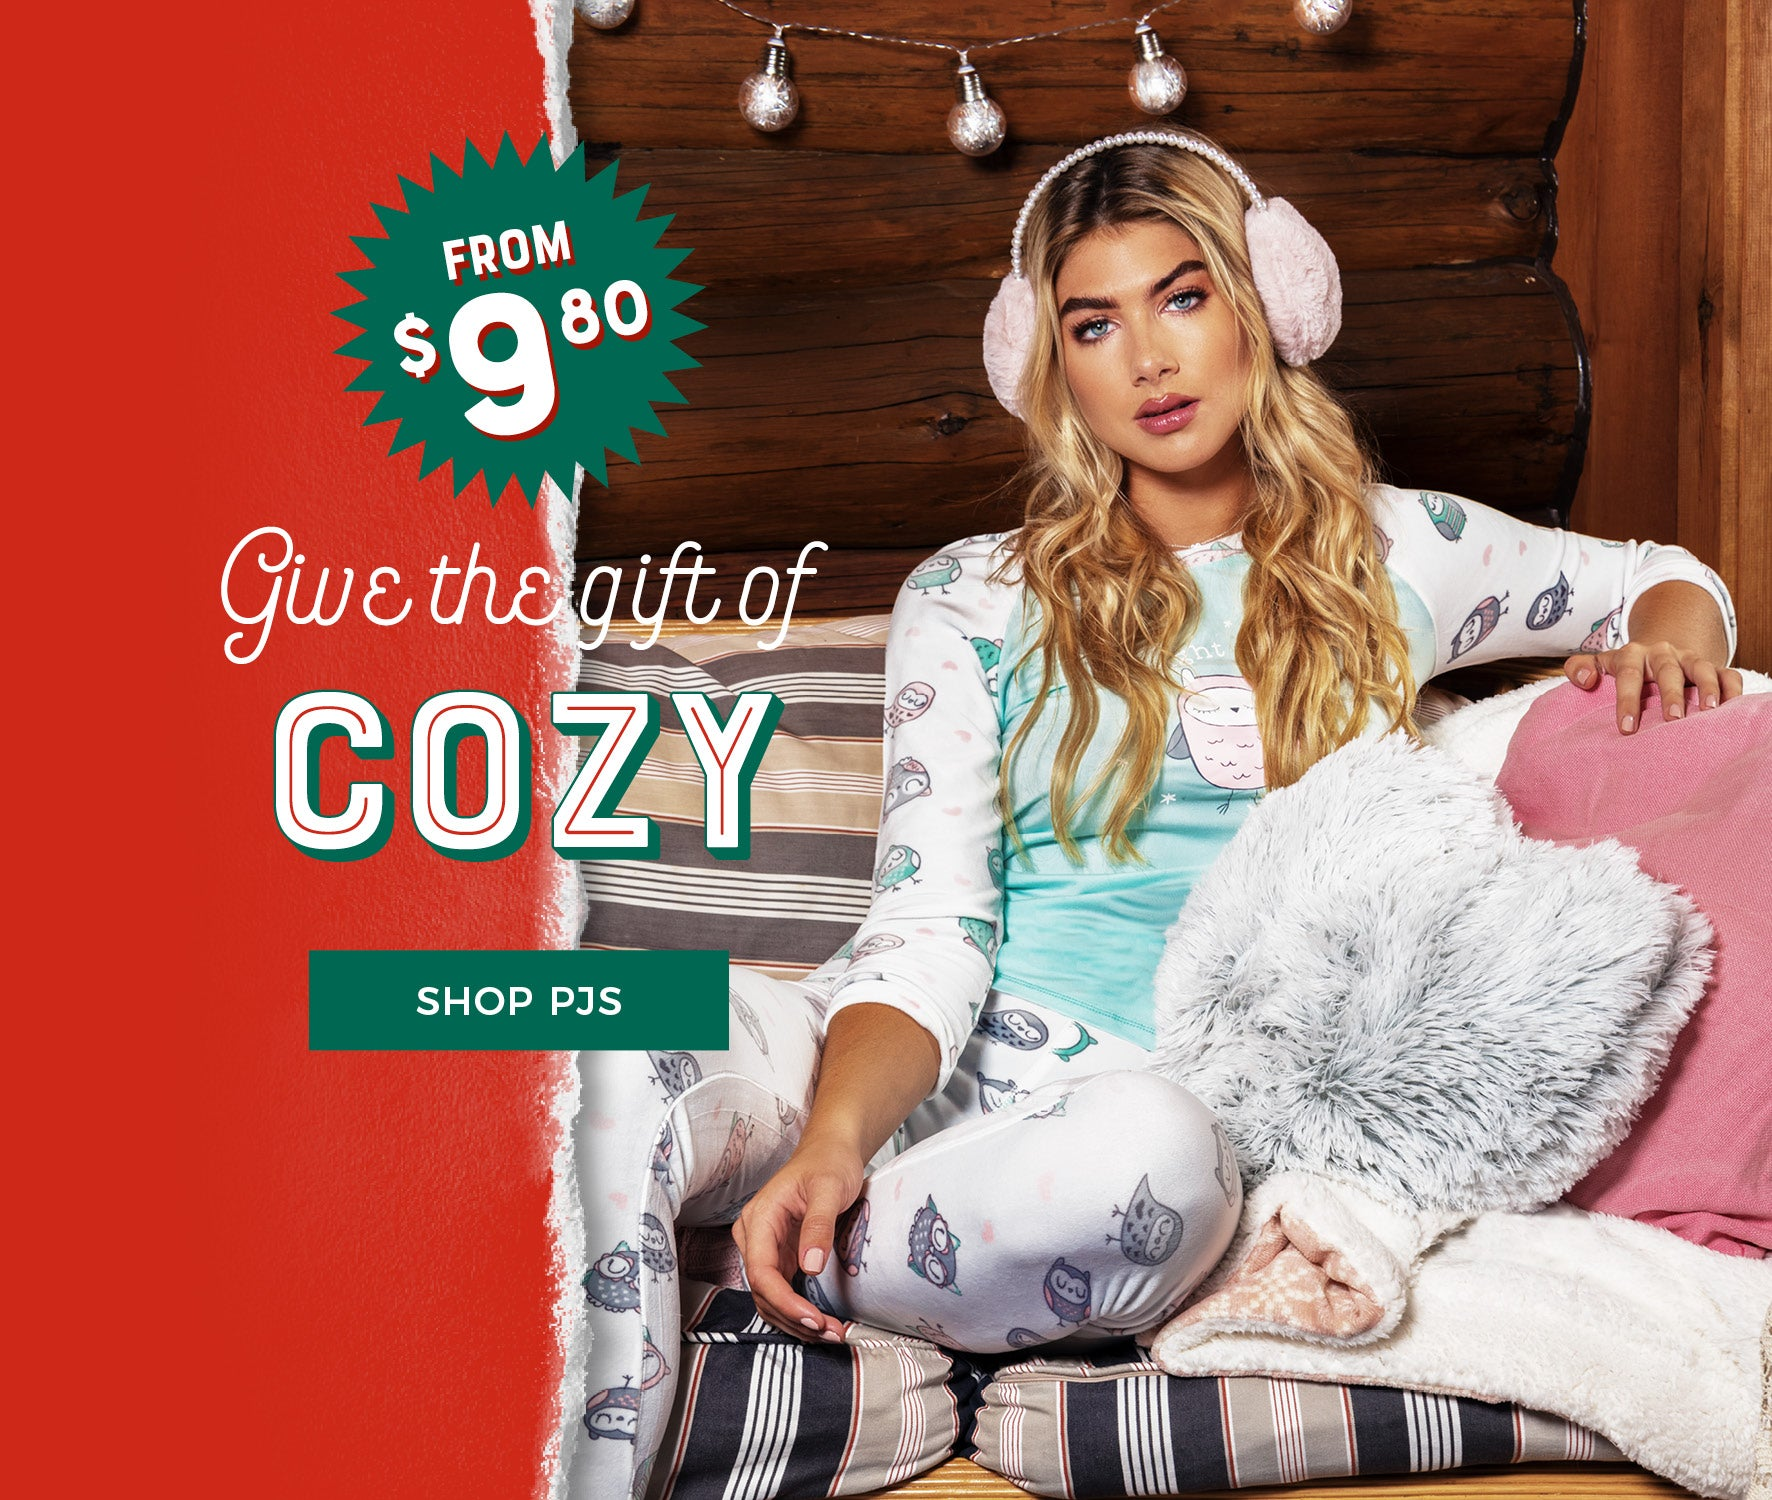 Urban Planet | Give The Gift of Cozy - Shop PJ's from $9.80